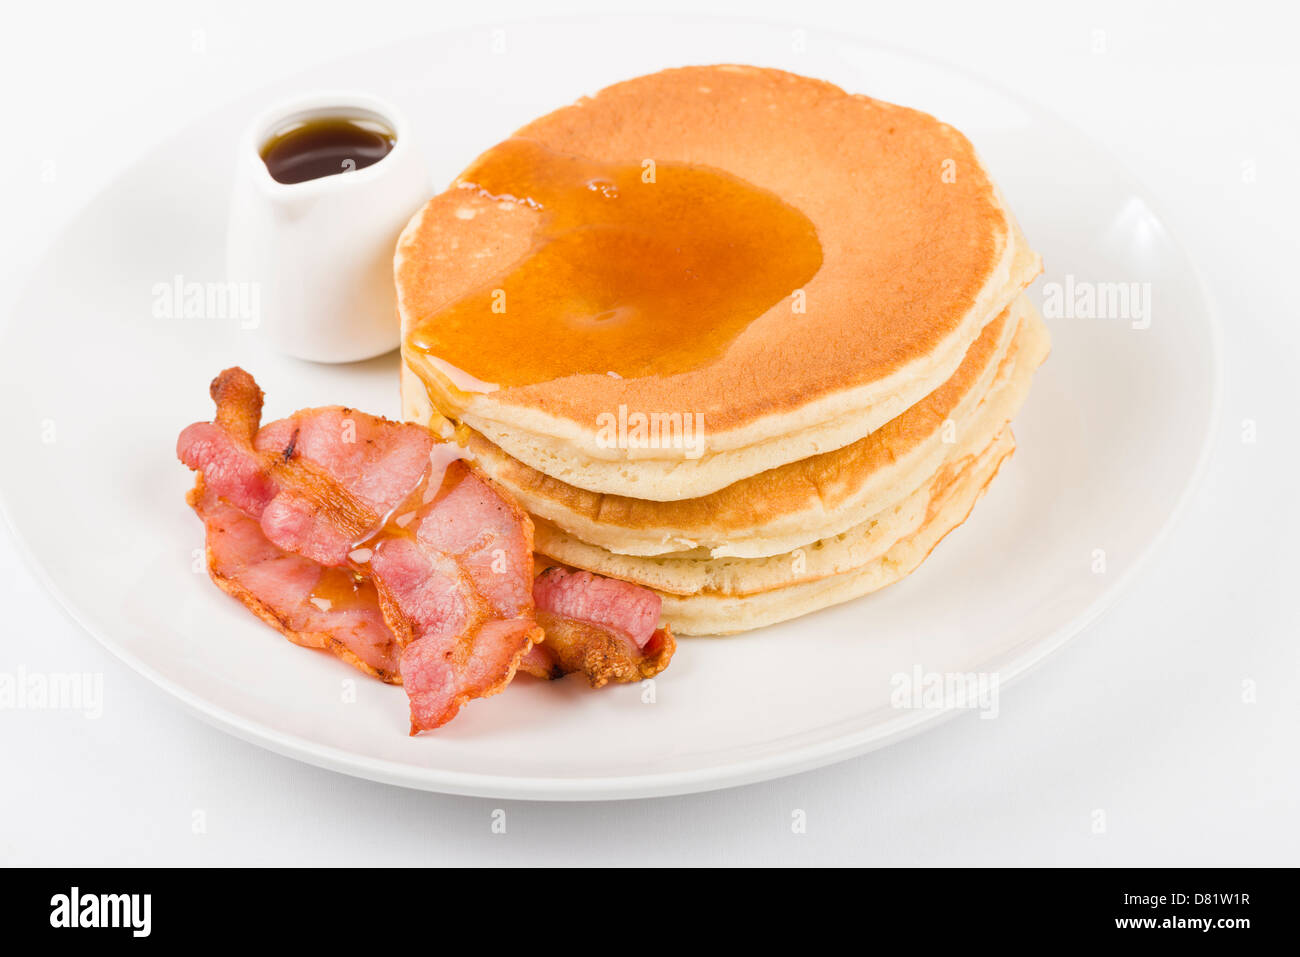 Pancakes, bacon and maple syrup on a white background. - Stock Image